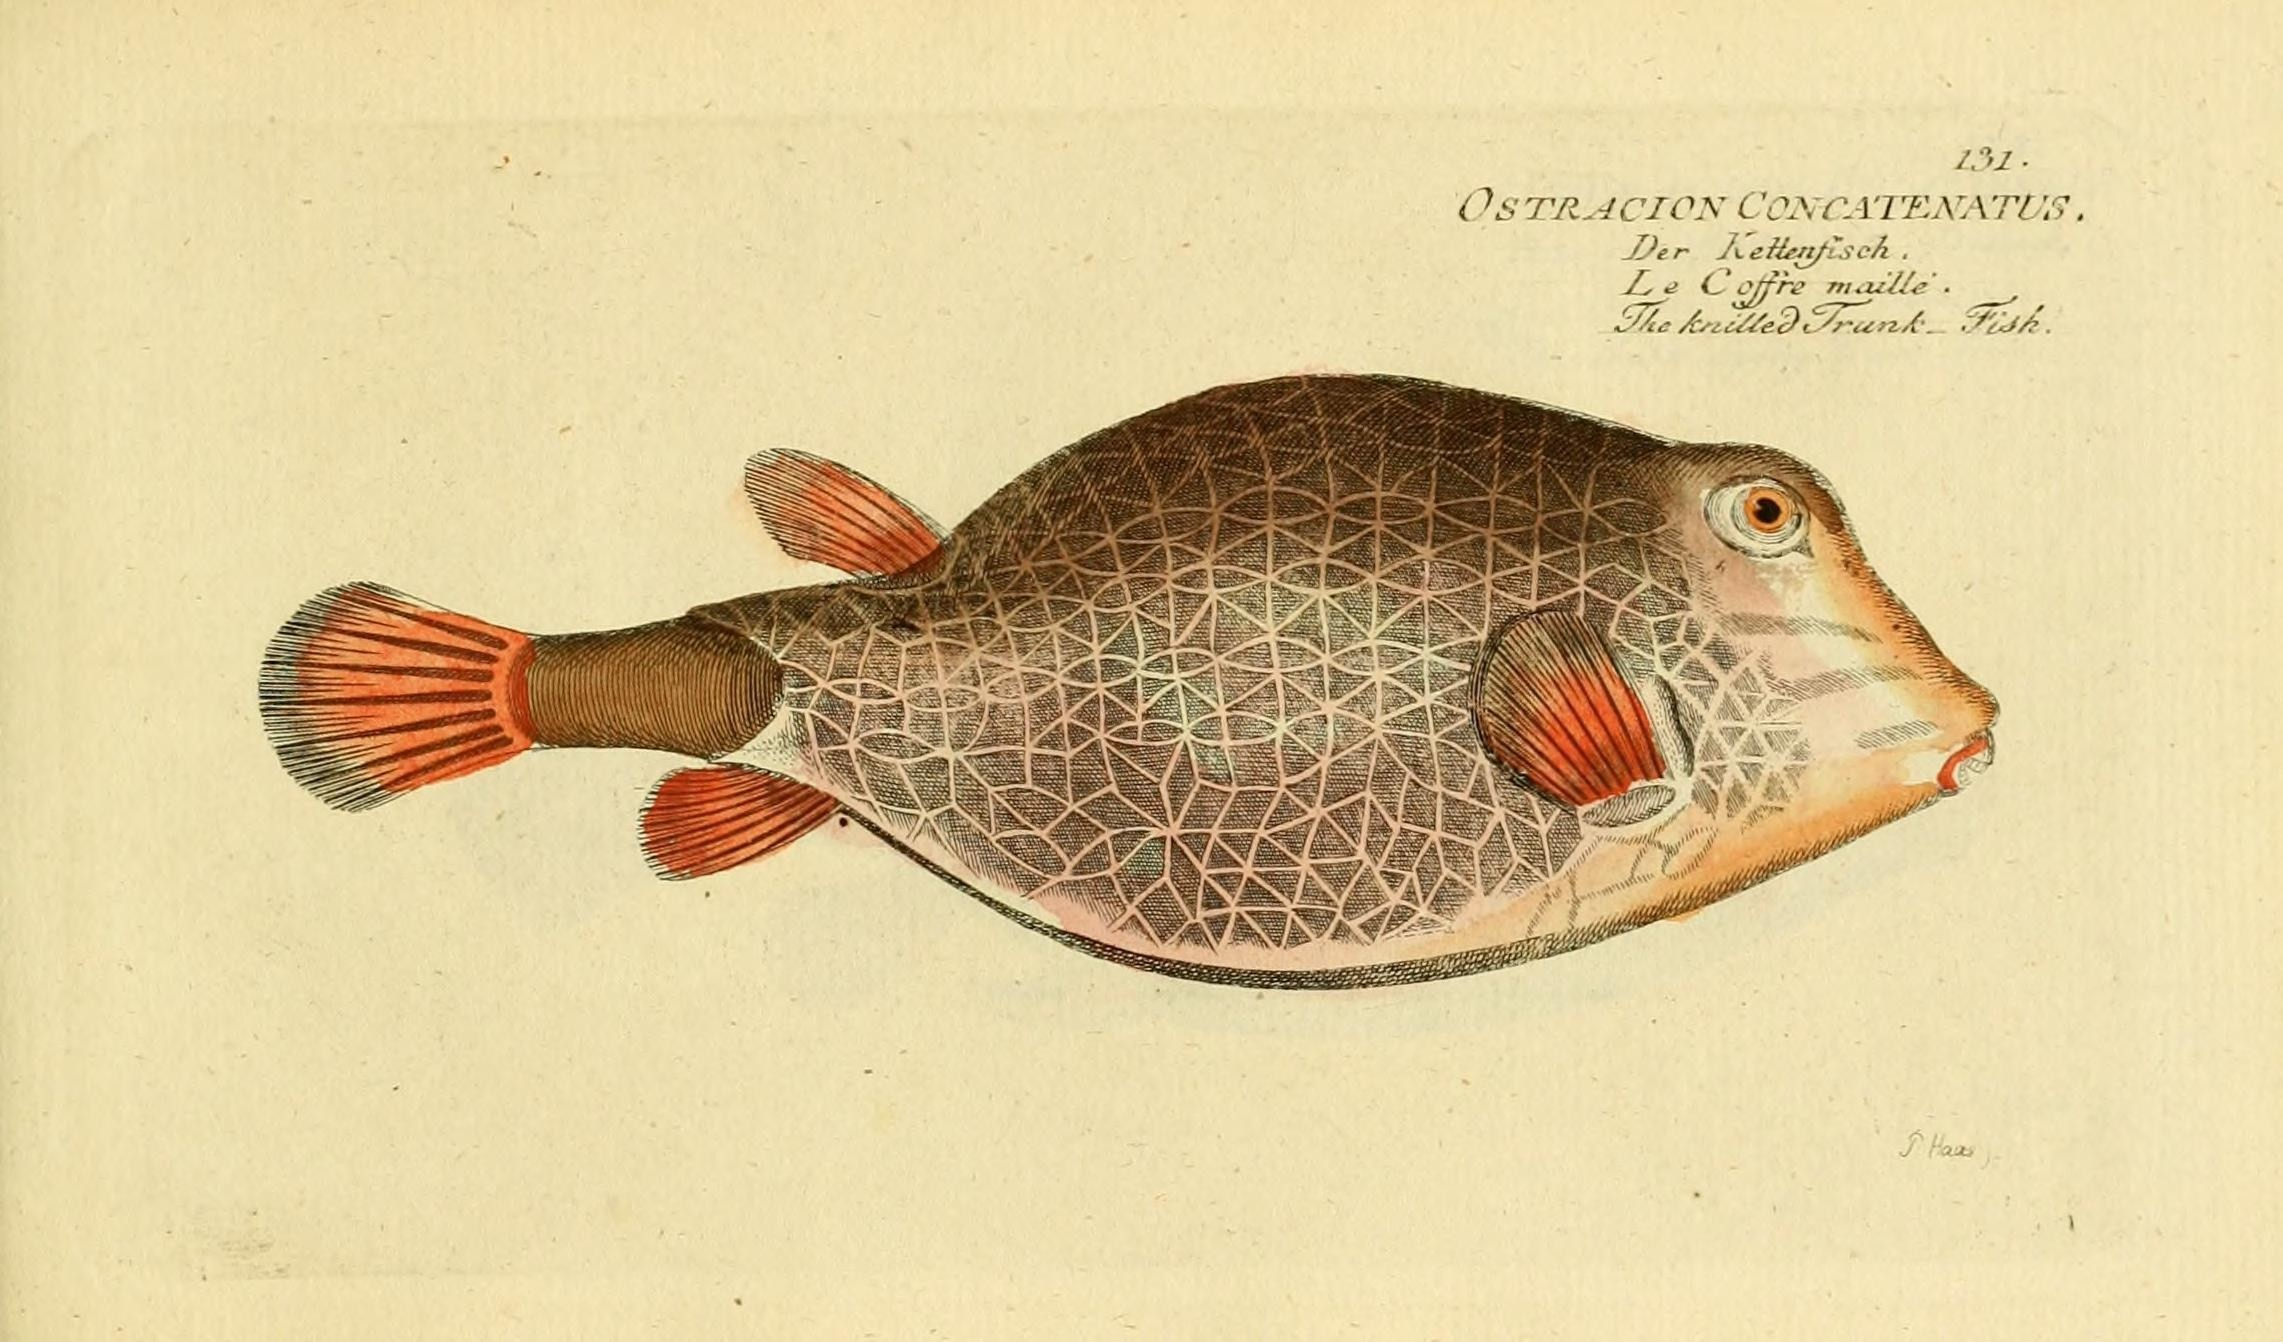 Image of Triangular boxfish